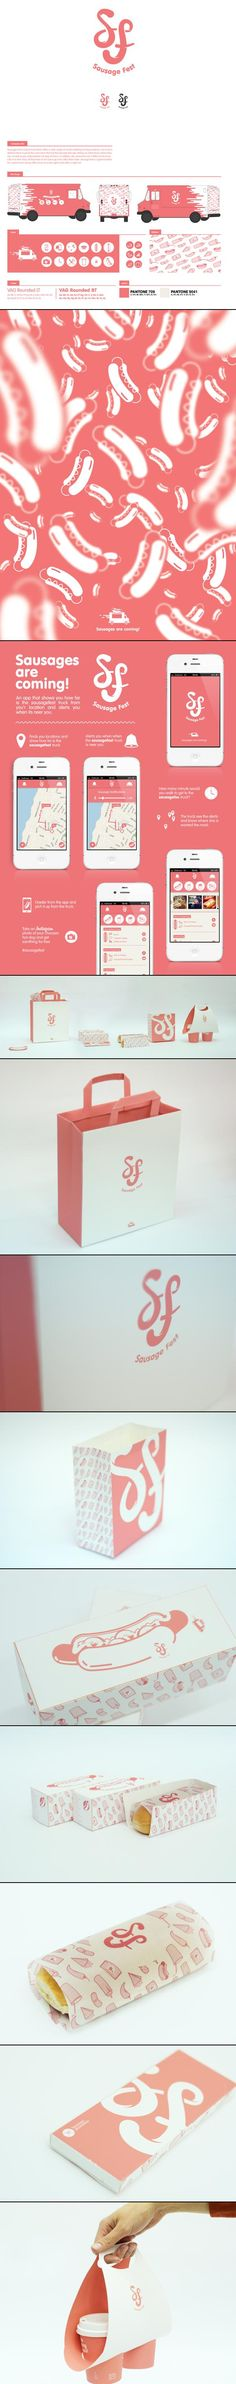 Sausage Fest By Avi Naim from 42Lions. I could eat this for breakfast #identity #packaging #branding #marketing PD